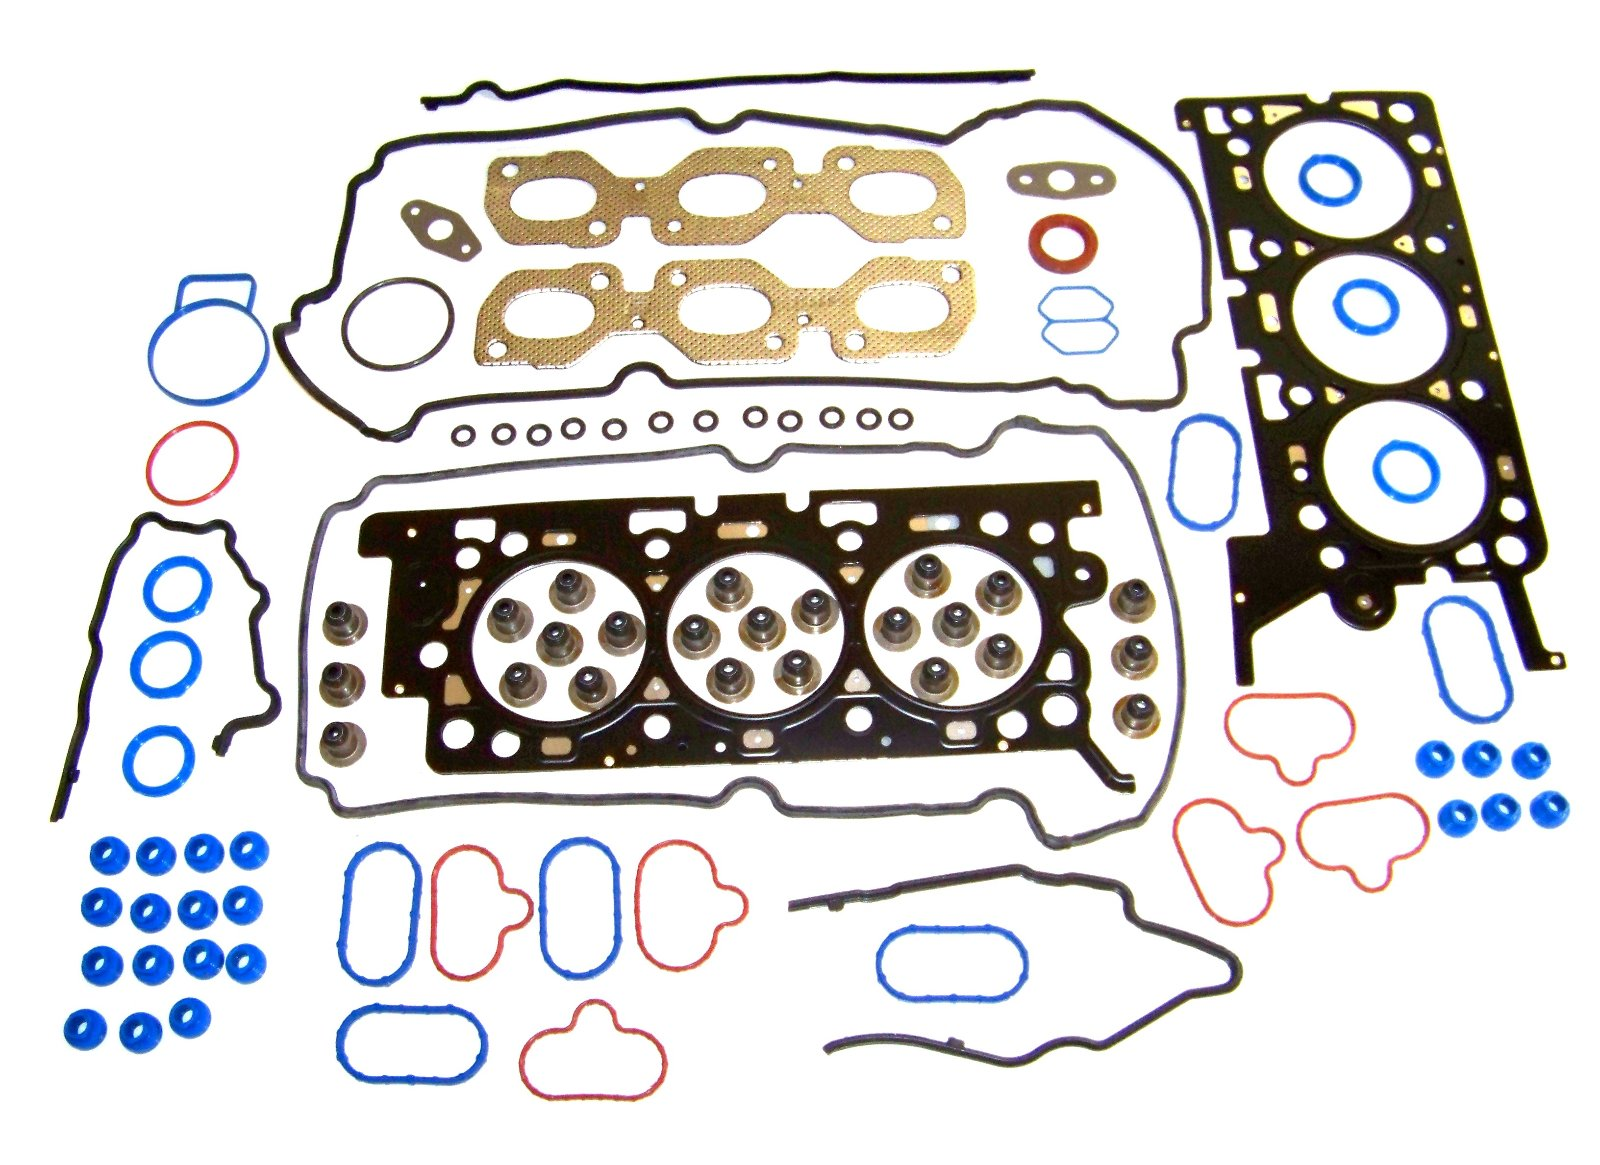 Multi-Layer Steel Ford Taurus Head Gasket Set 2001 To 2007-3.0L V6 OHV